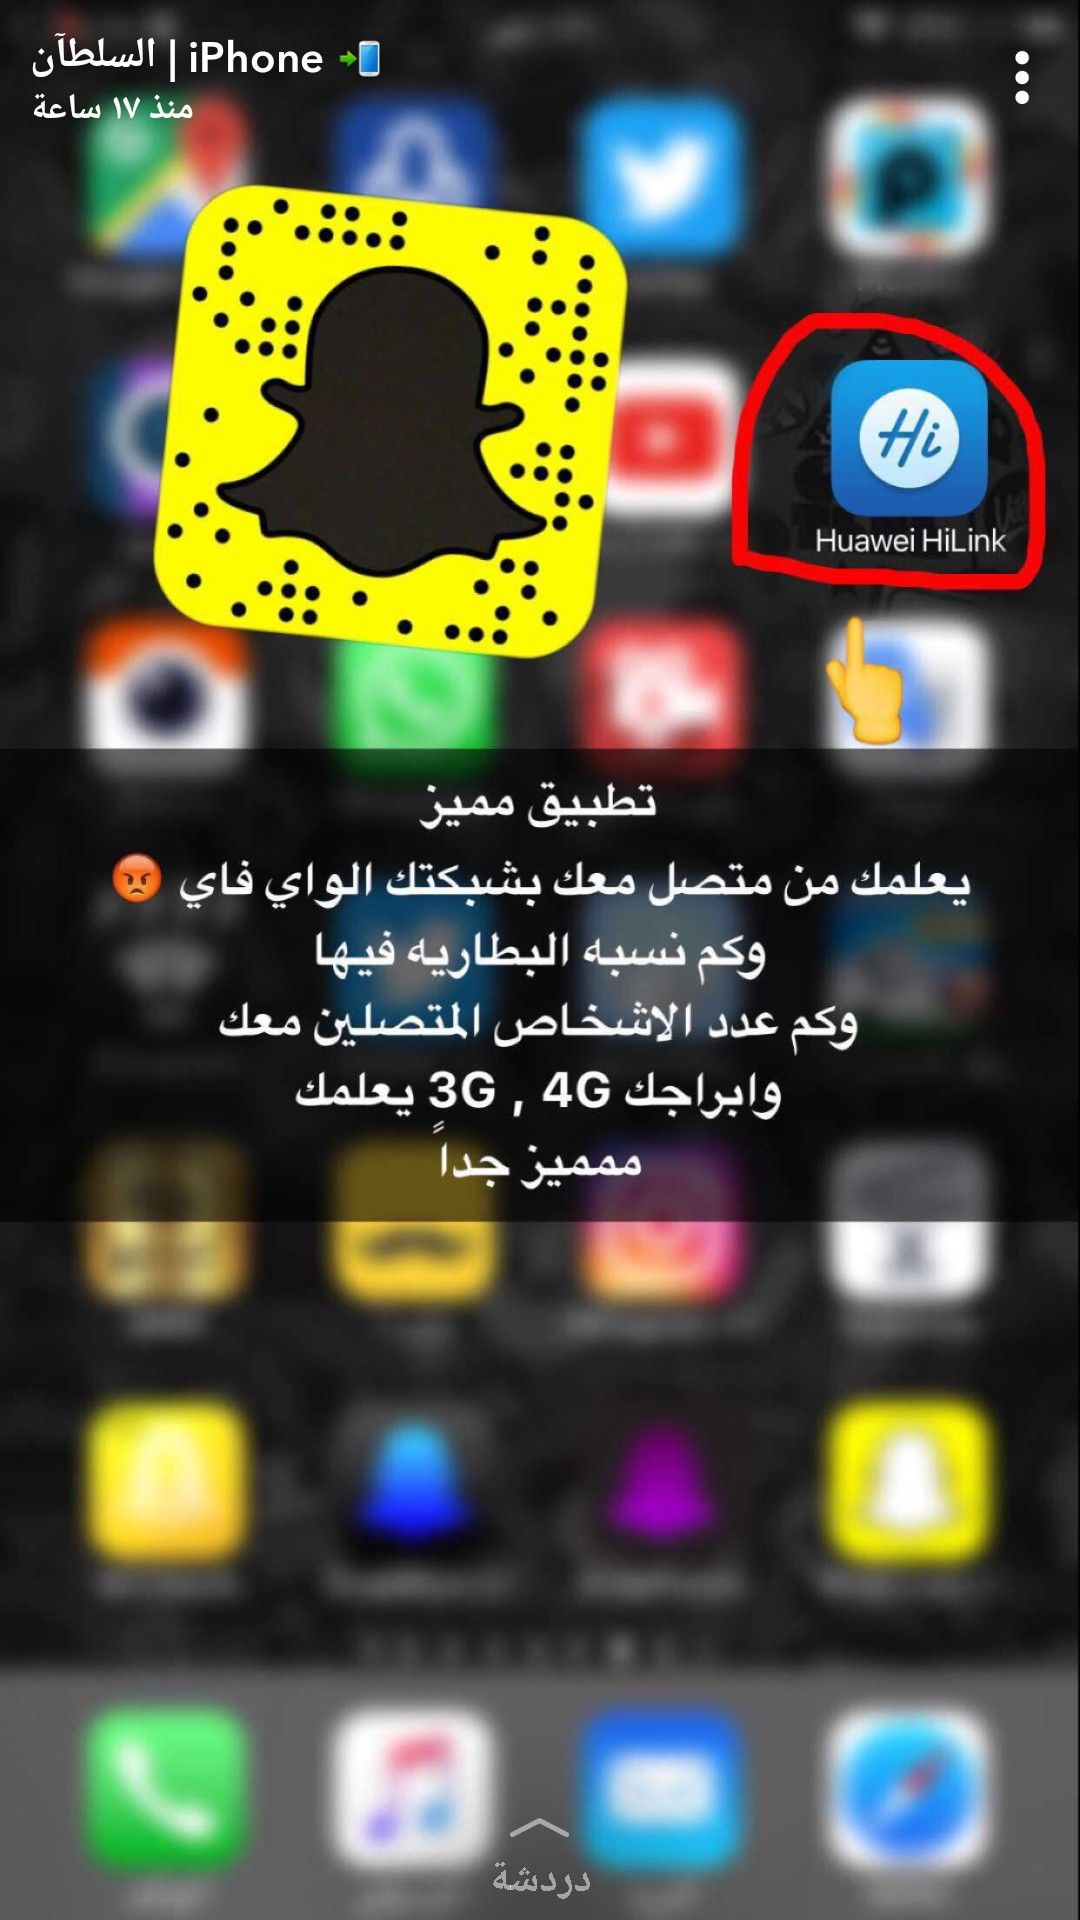 Pin By وهم On برامج مفيدة Iphone App Layout Application Iphone App Layout